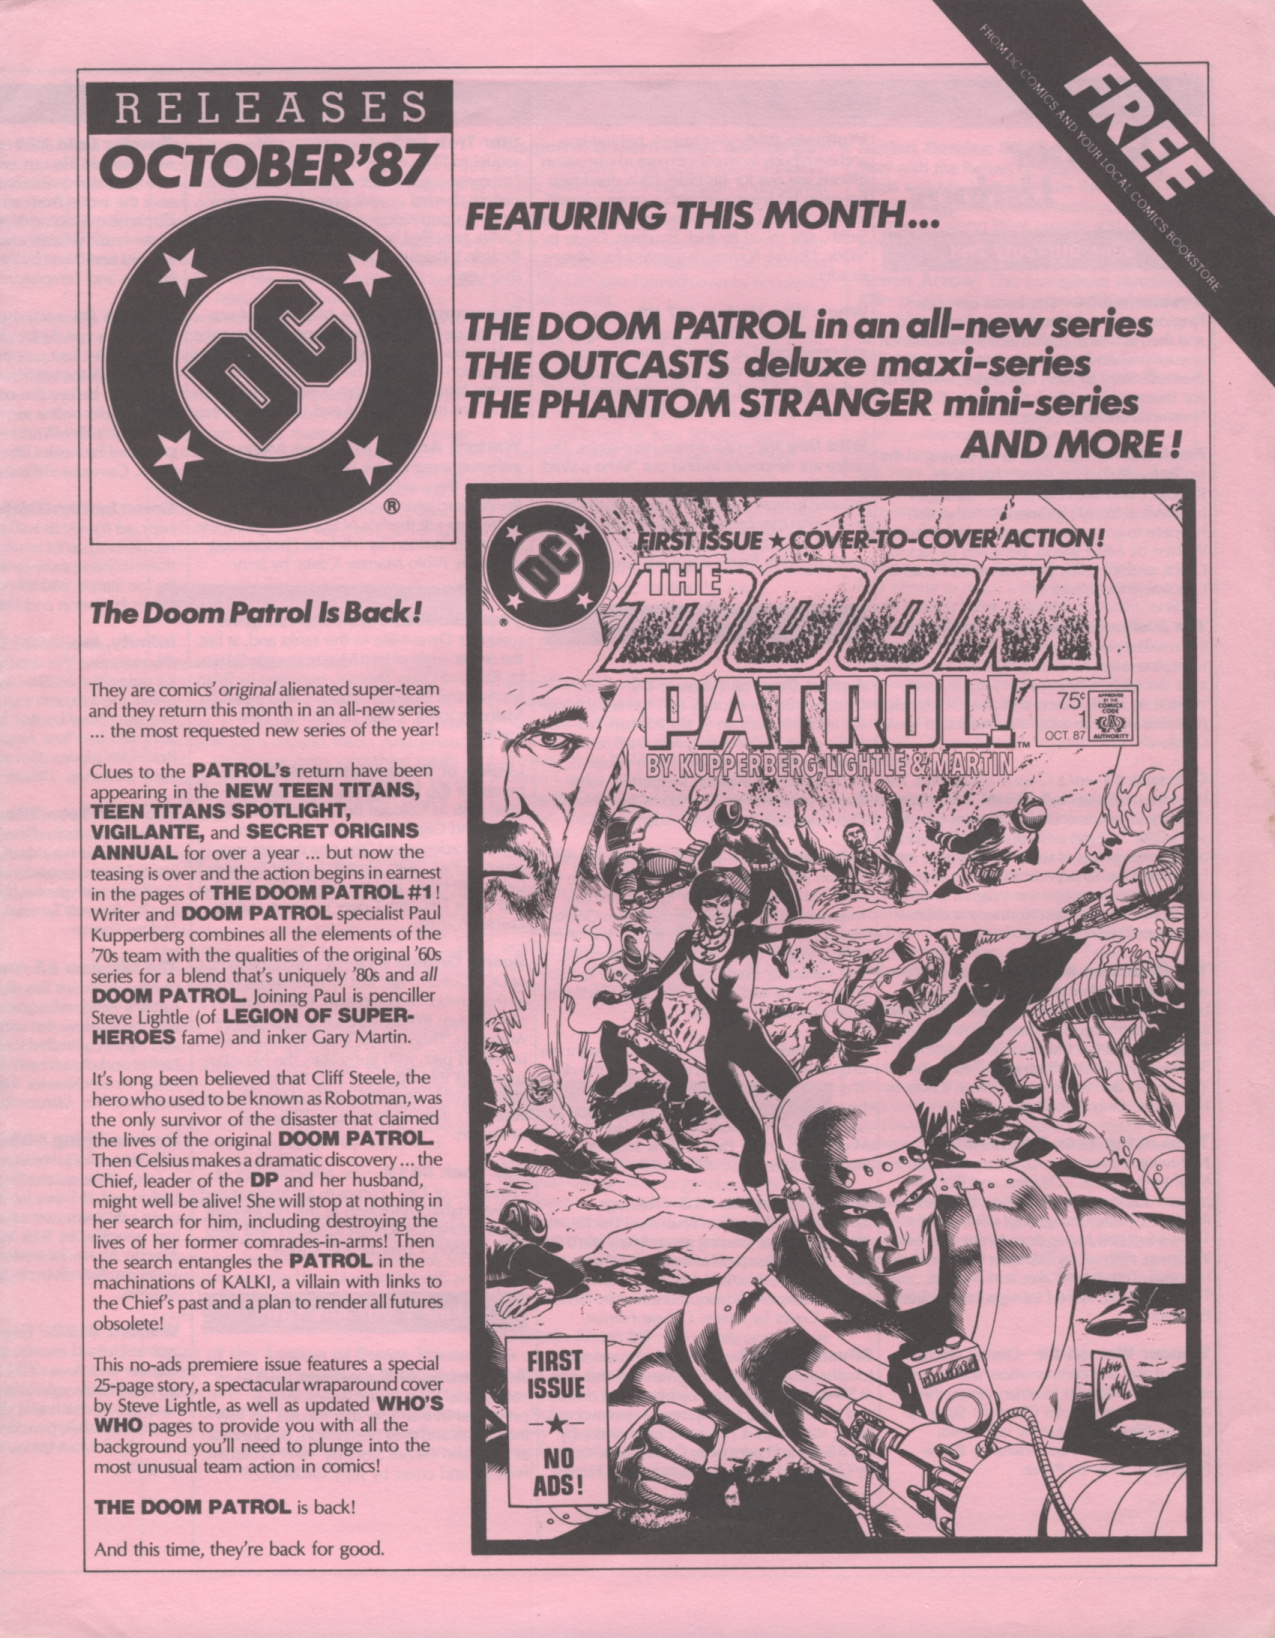 Time Capsule: DC Releases October '87